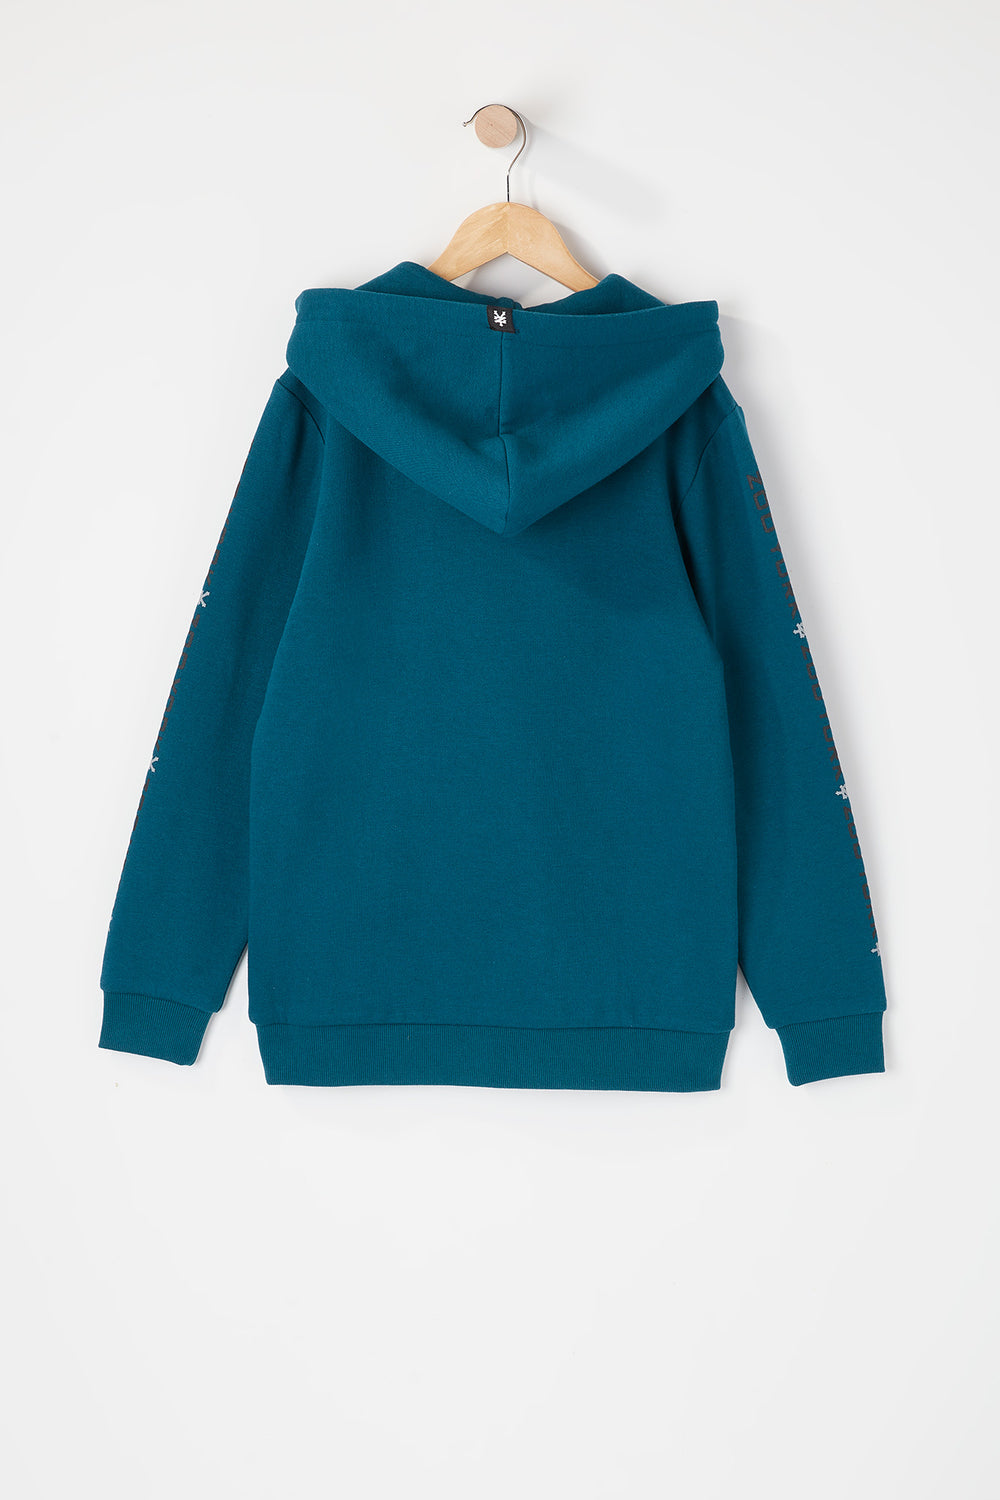 Zoo York Youth Box Logo Popover Hoodie Teal